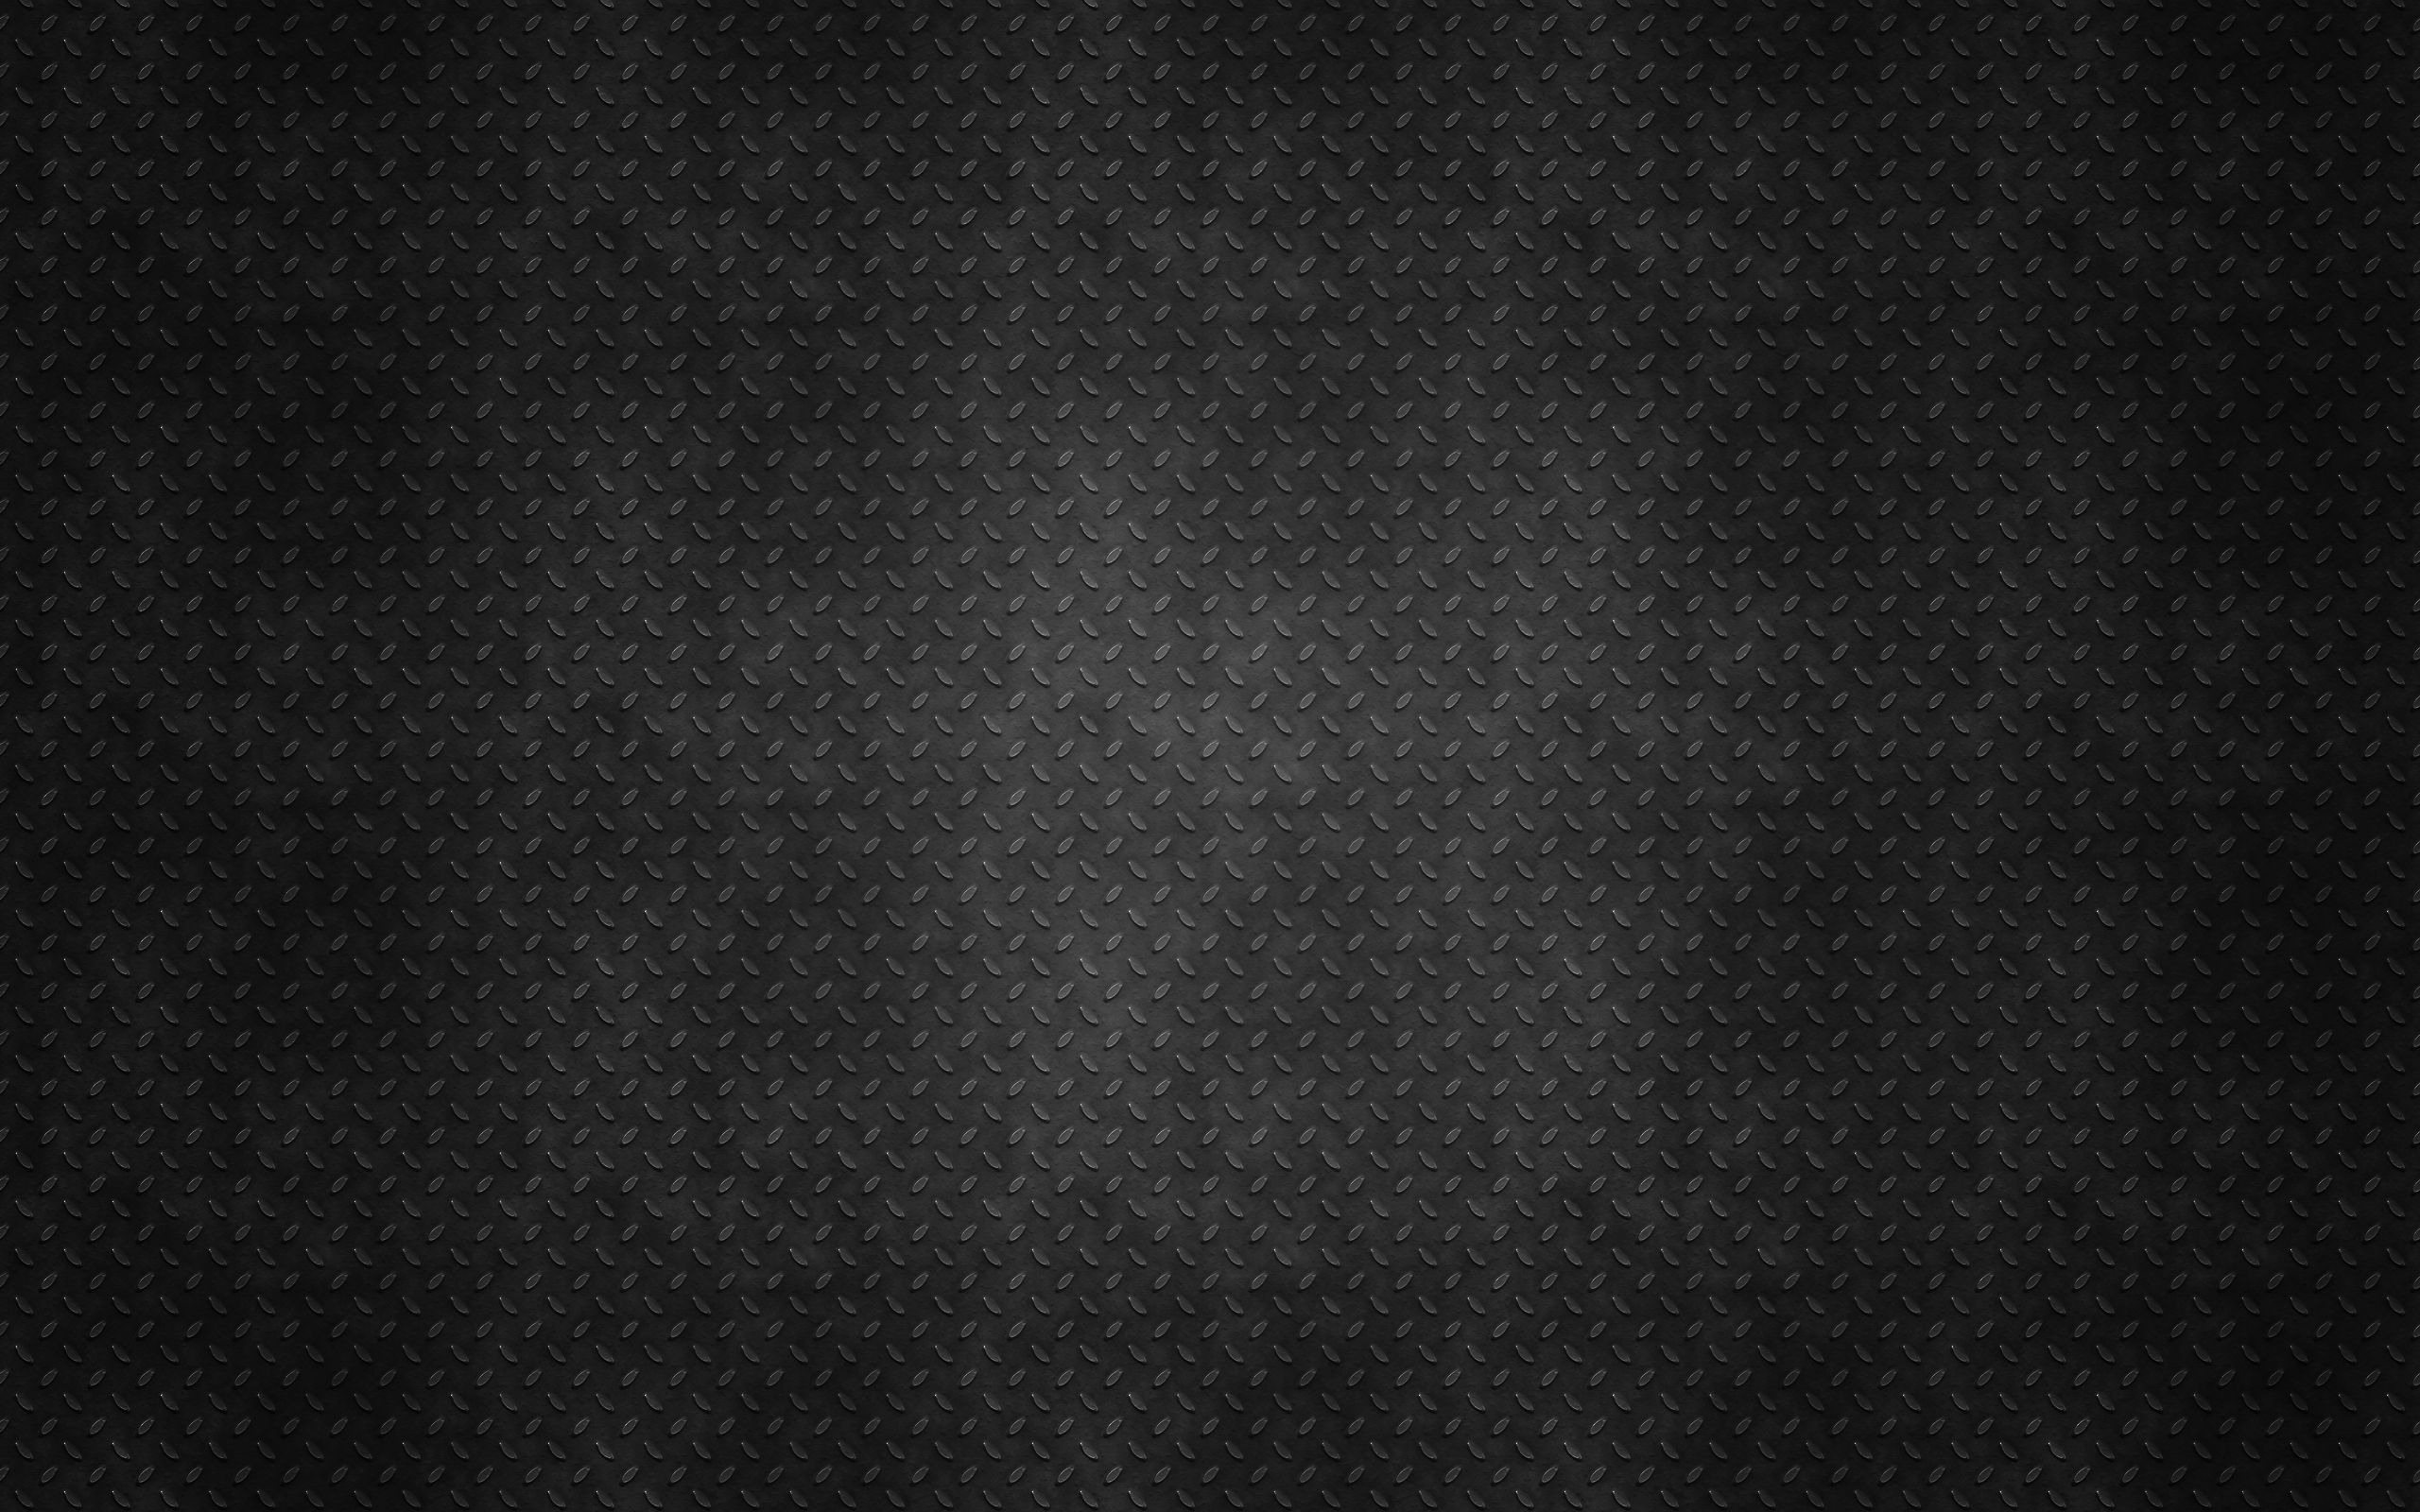 Black Metal Textured Abstract Background Wallpaper 2560x1600